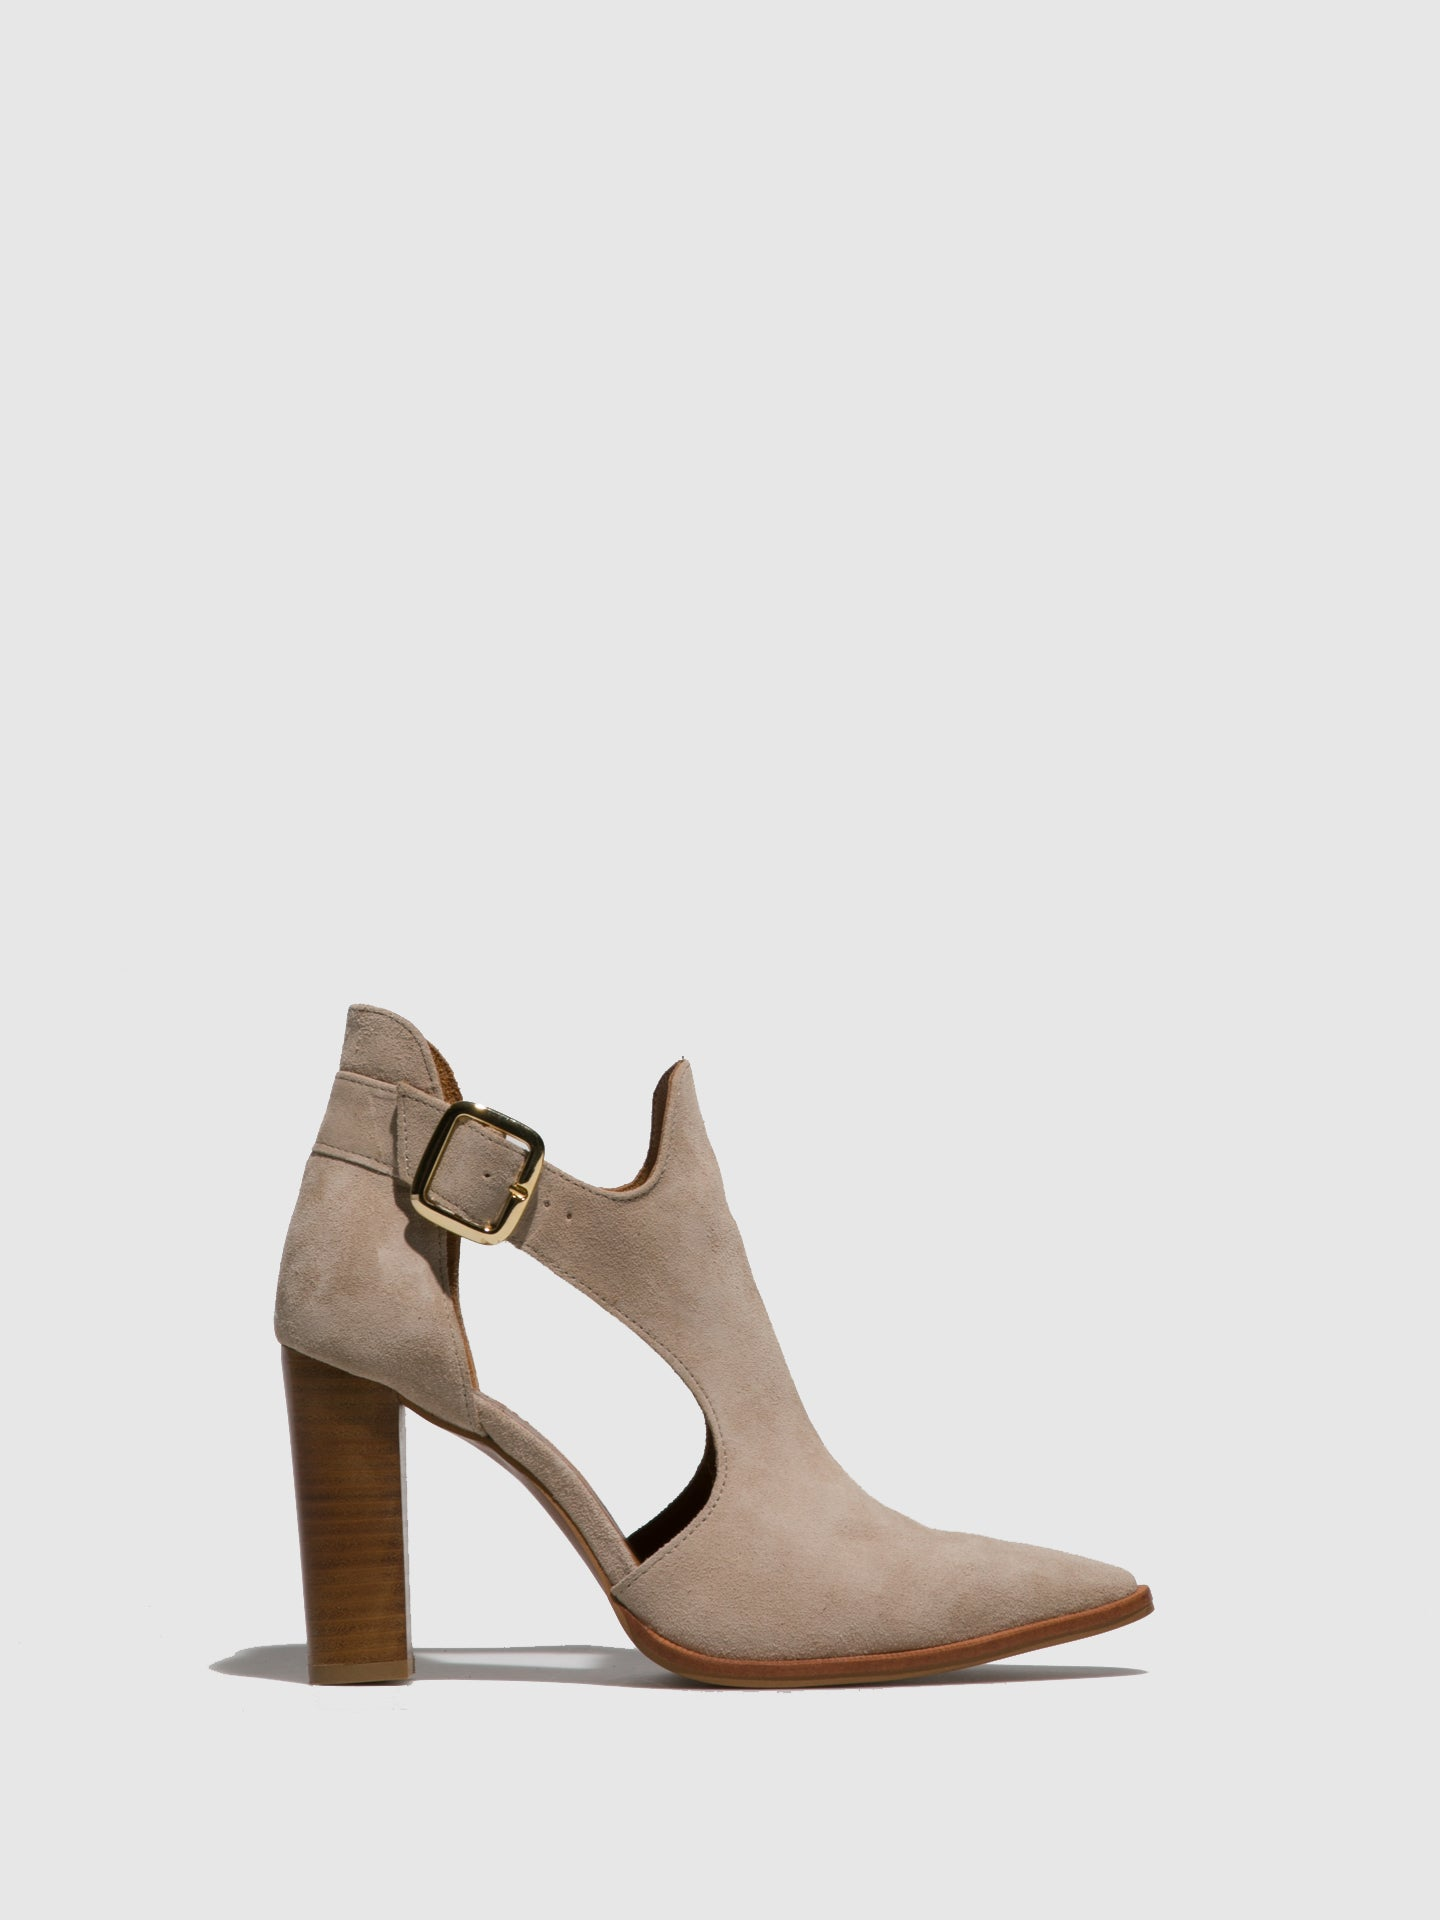 Foreva Beige Pointed Toe Ankle Boots